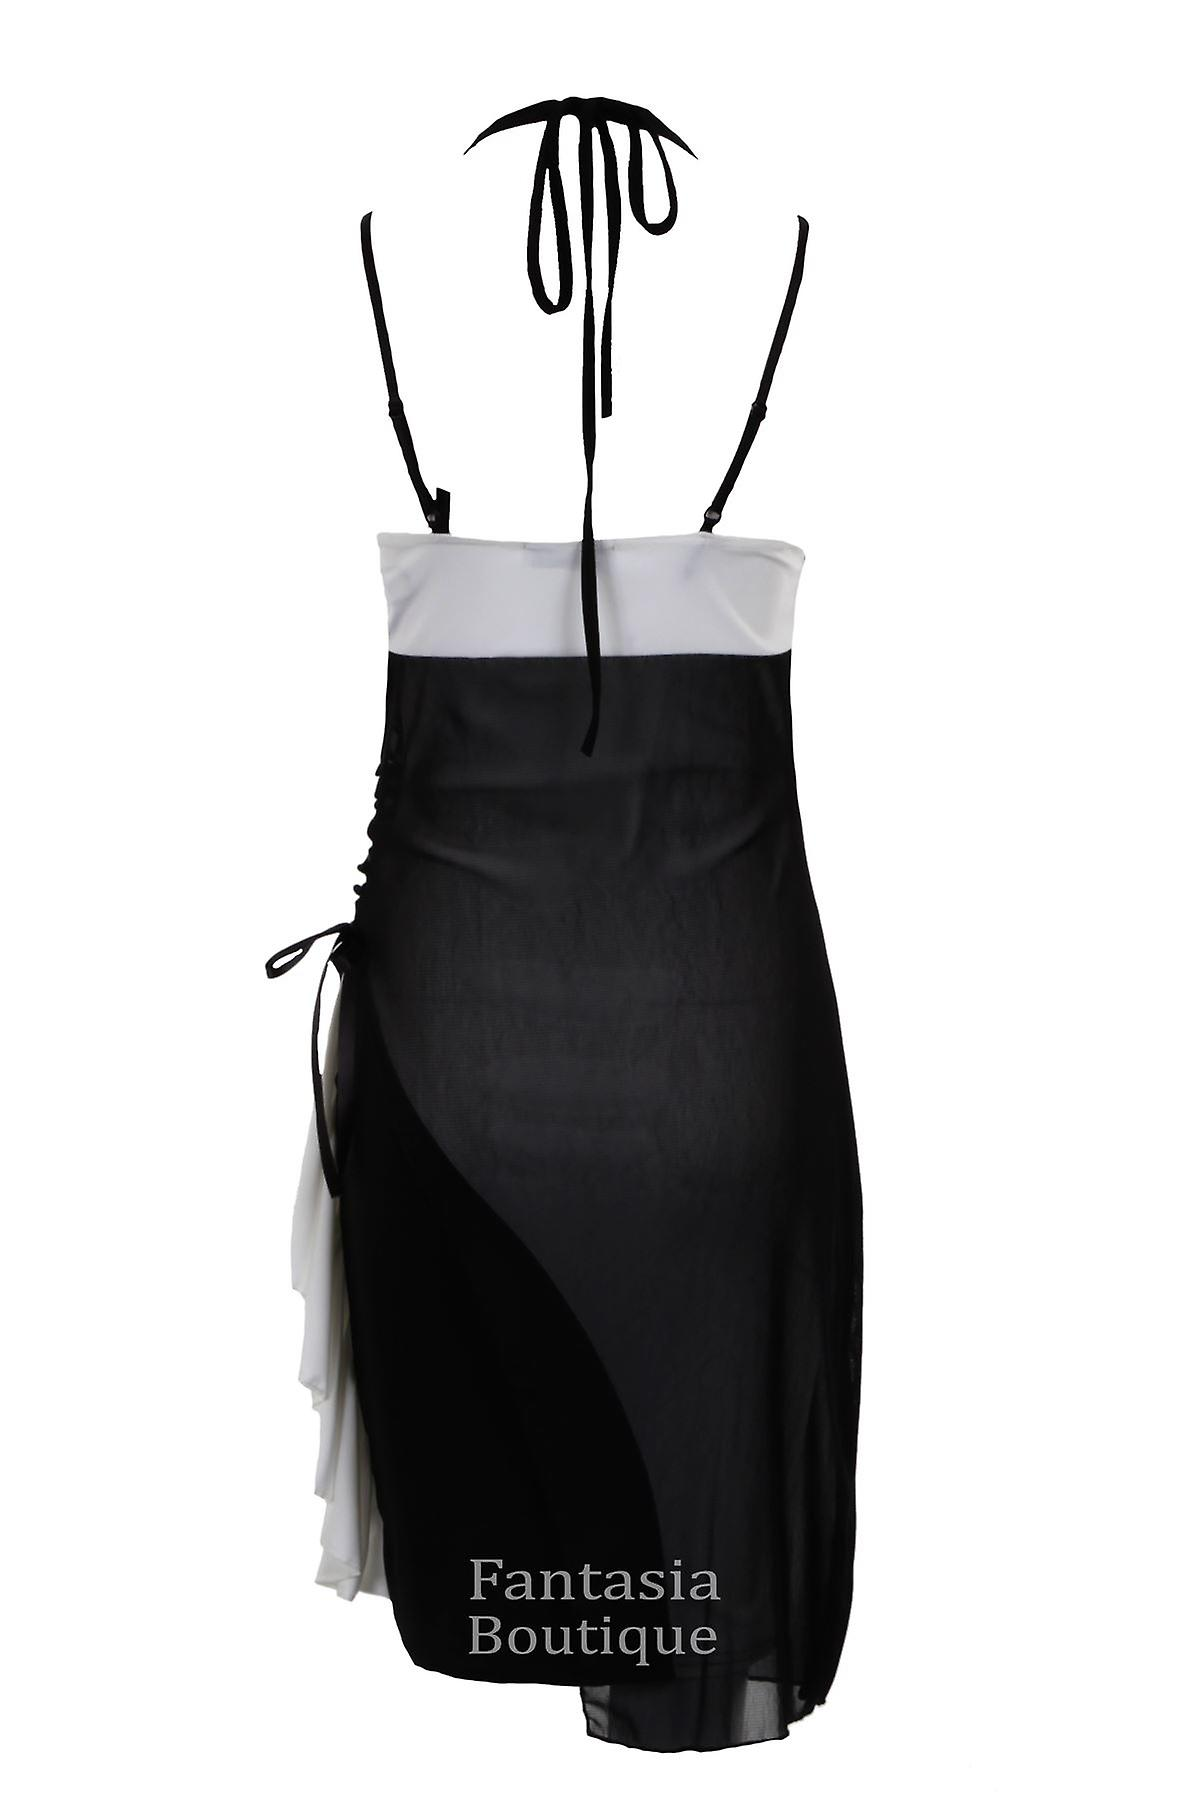 New Ladies Sleeveless Strap Halter Neck Mesh Side Gathered Bow Women's Dress